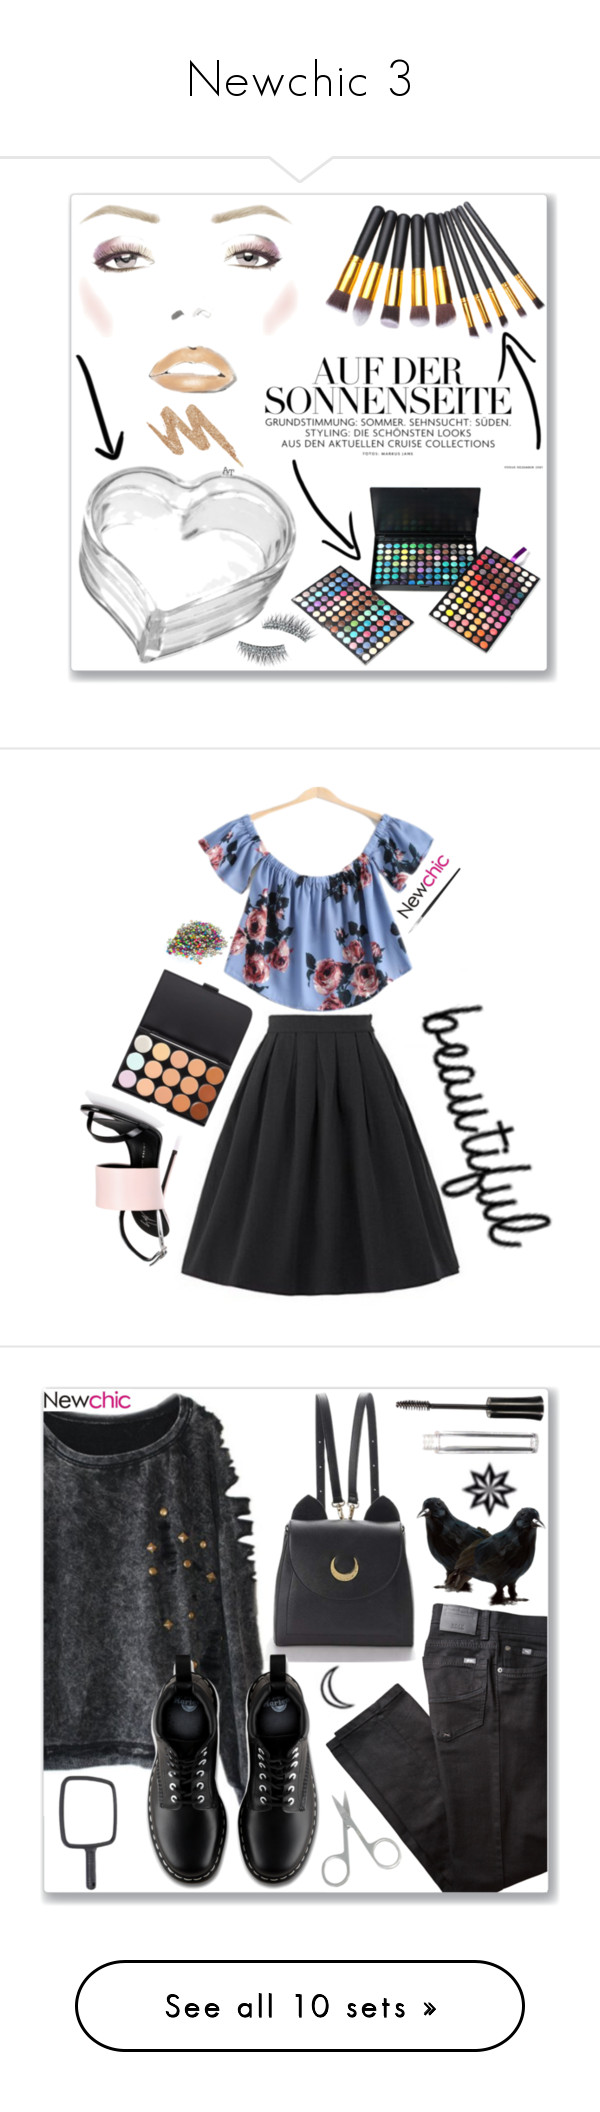 """""""Newchic 3"""" by abecic ❤ liked on Polyvore featuring newchic, beauty, Urban Decay, Kre-at Beauty, Giuseppe Zanotti, BRAX, WithChic, Dr. Martens, Topshop and Chi Chi"""